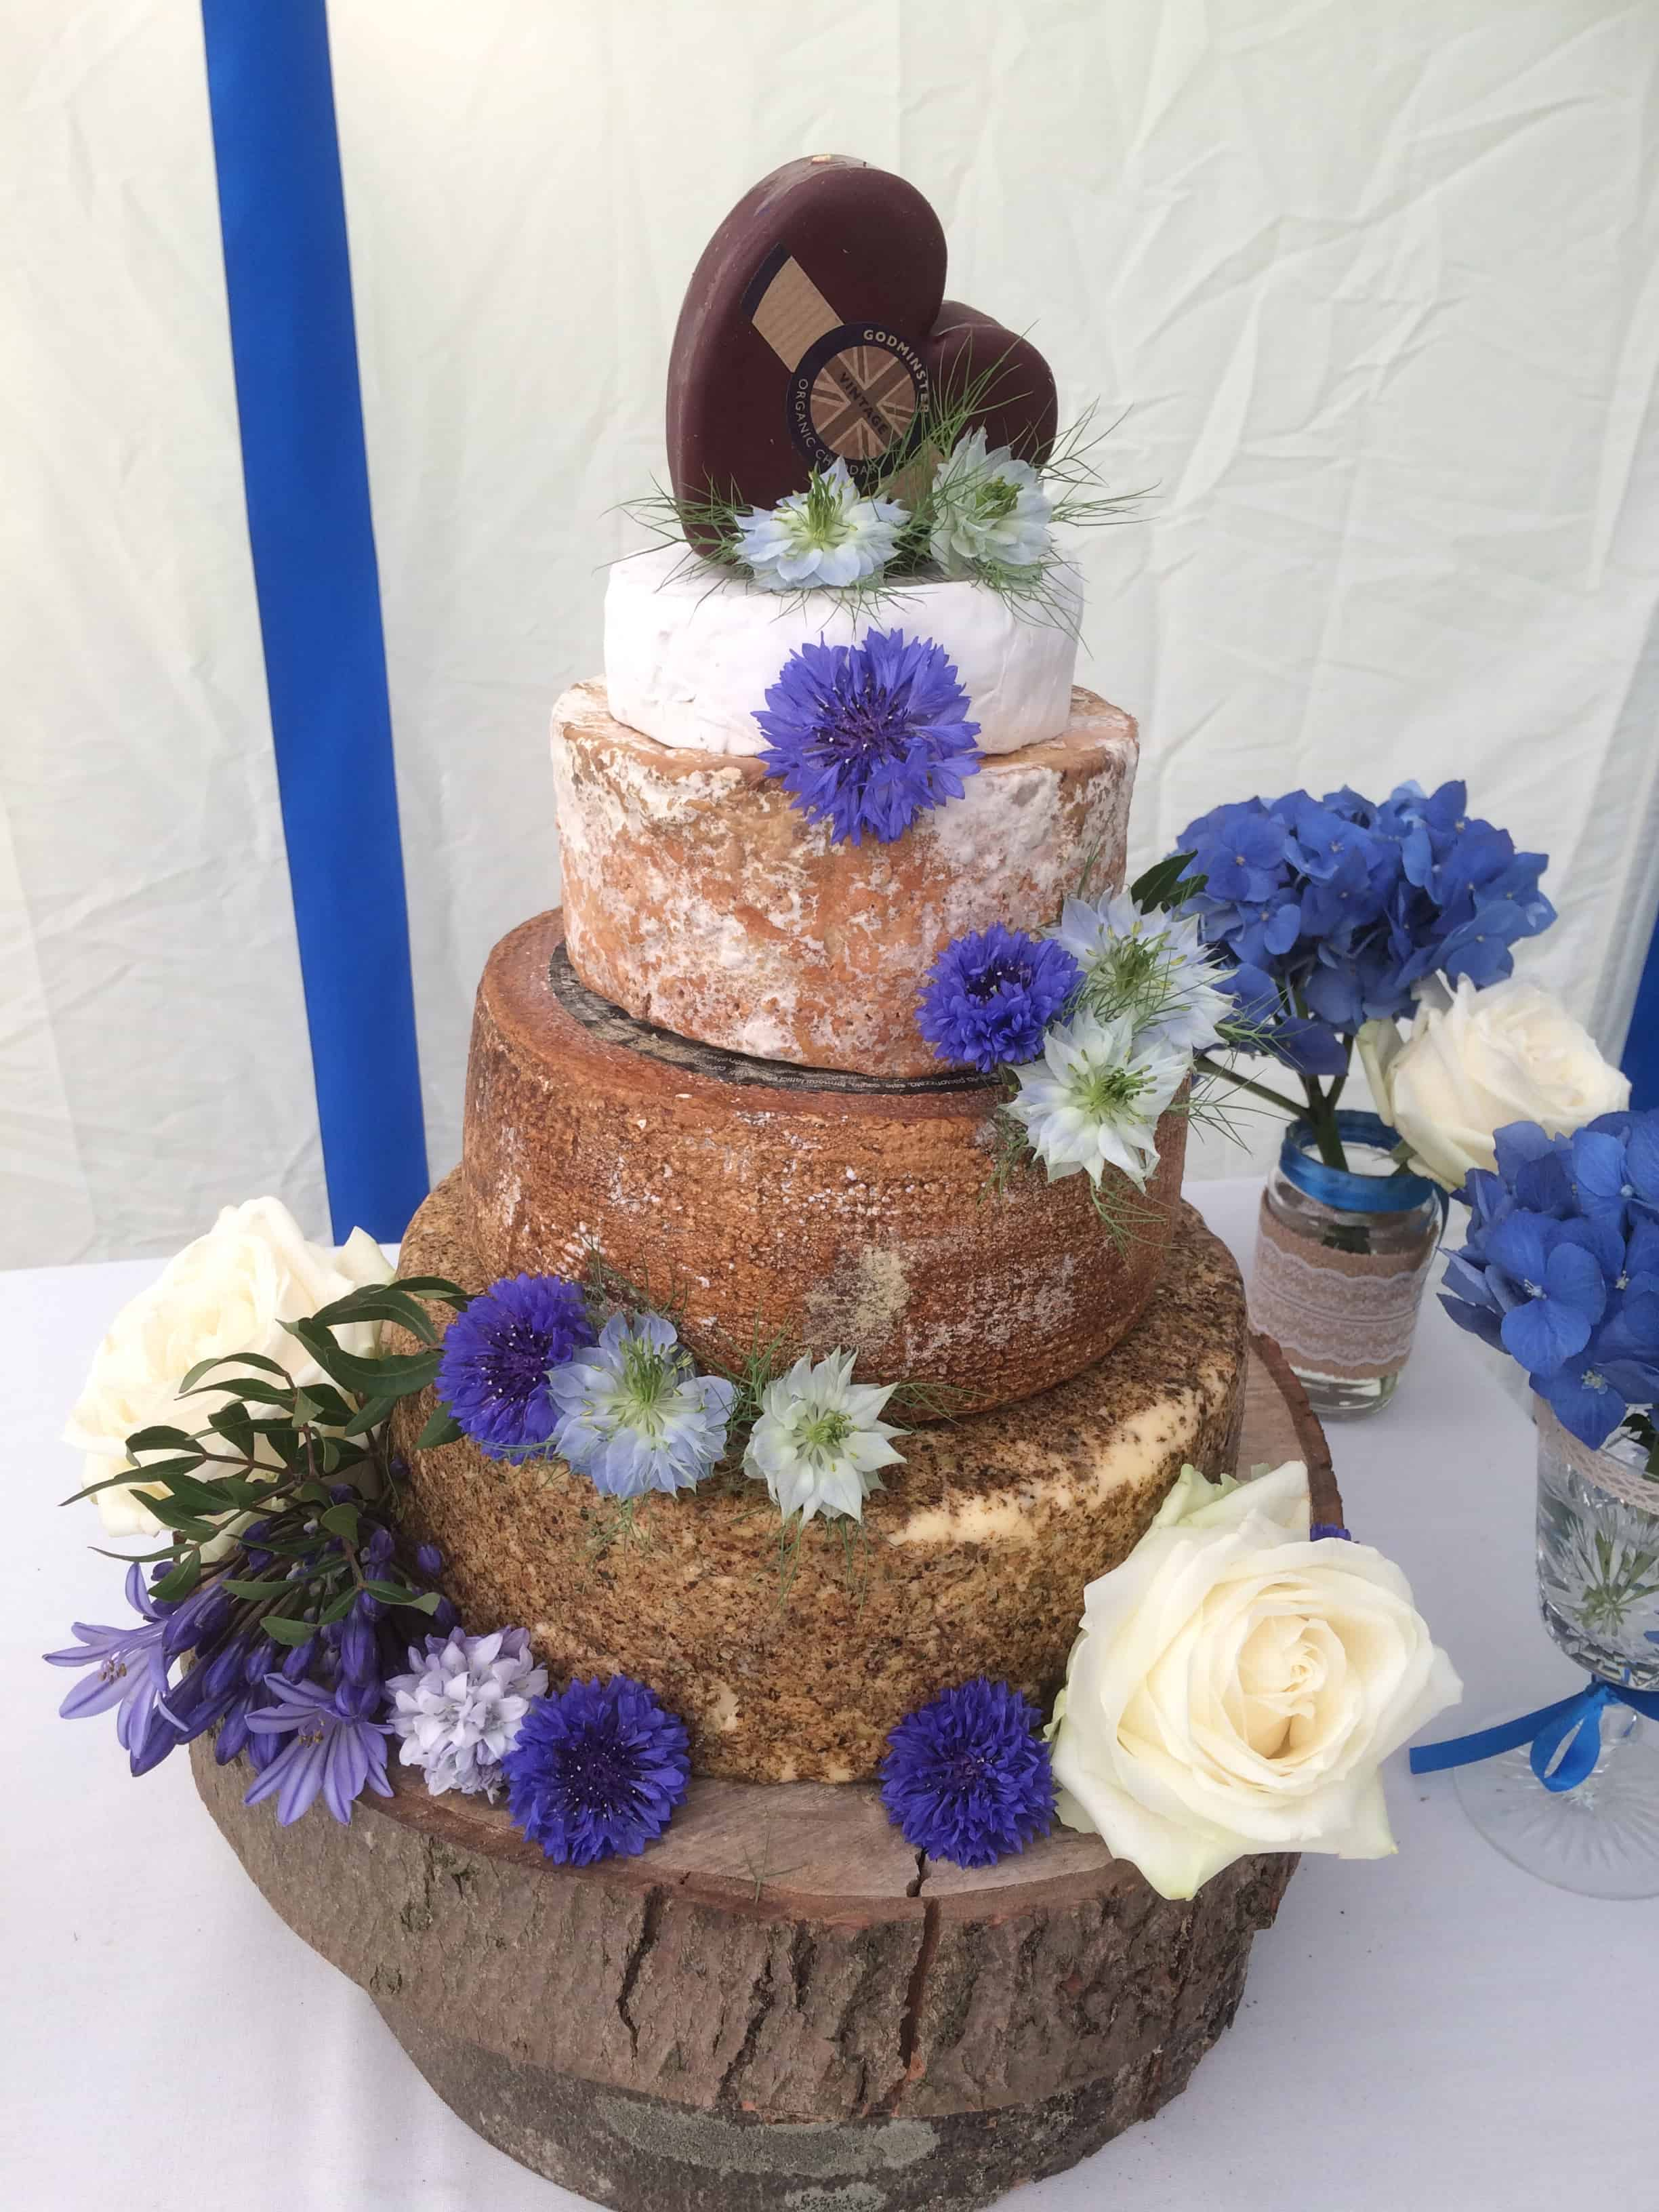 Blue and white flowers on a cheese cake at The English Wine Centre